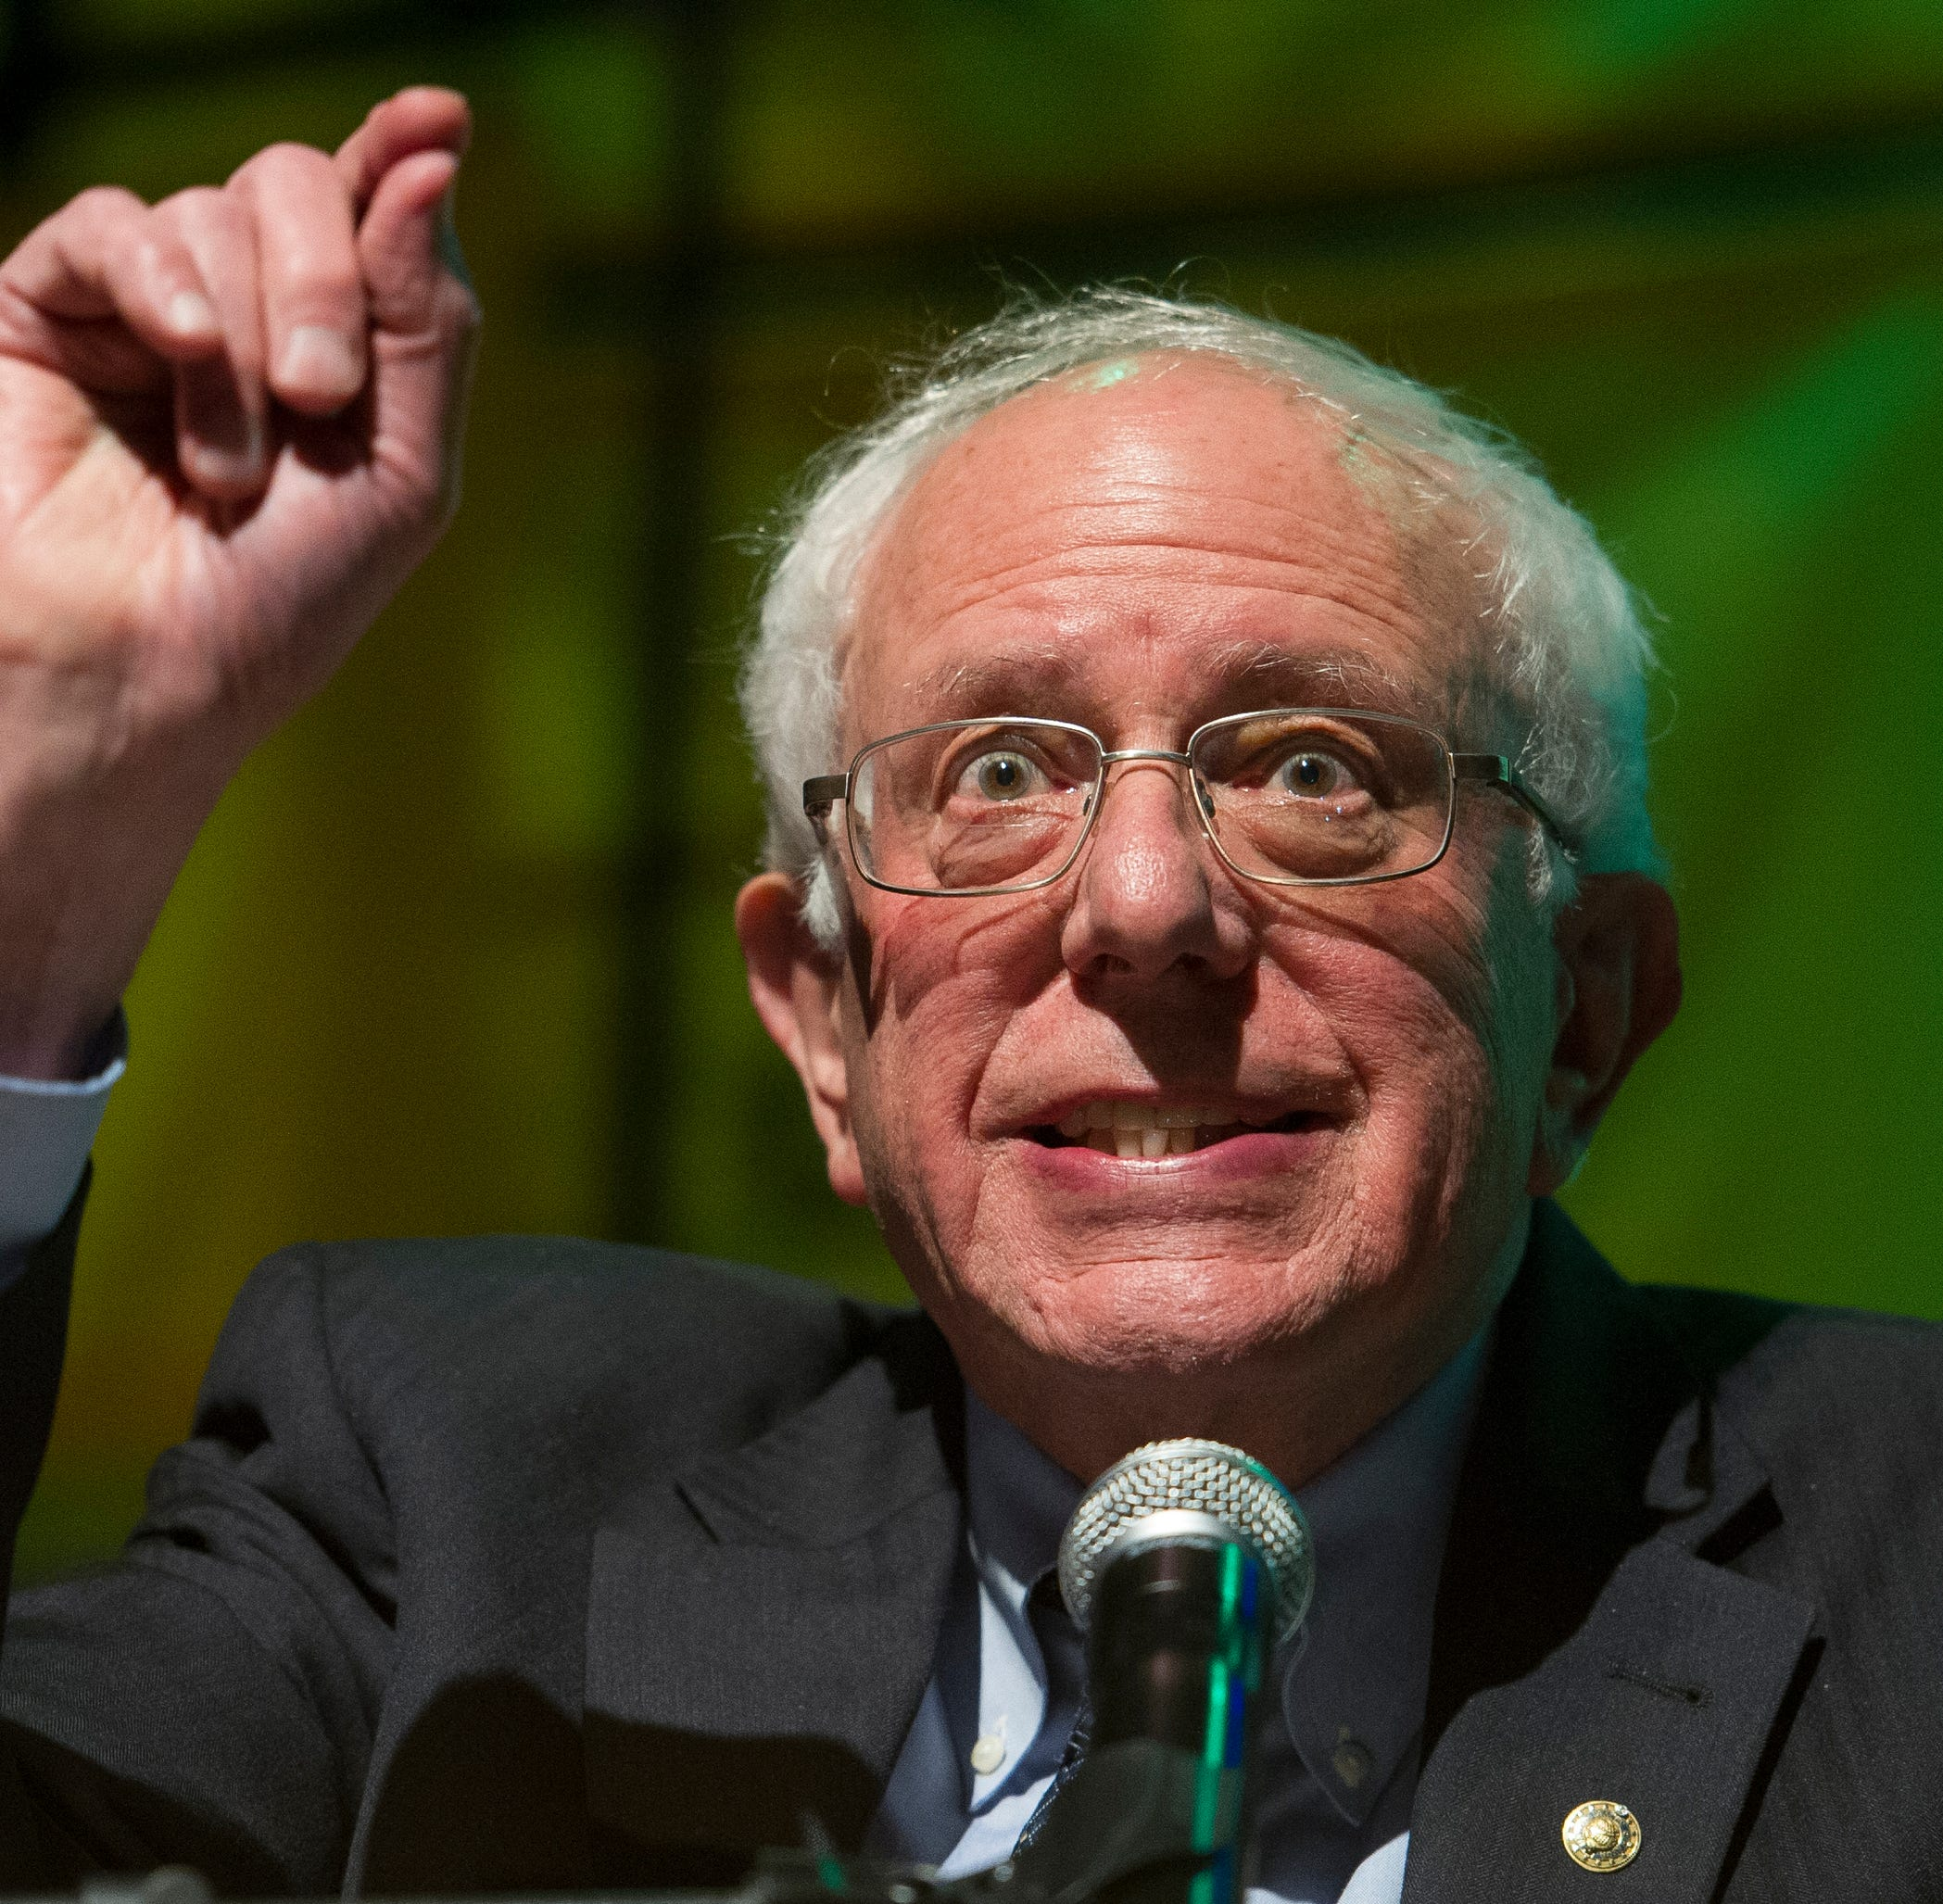 Bernie Sanders to call for a ban on for-profit charter schools